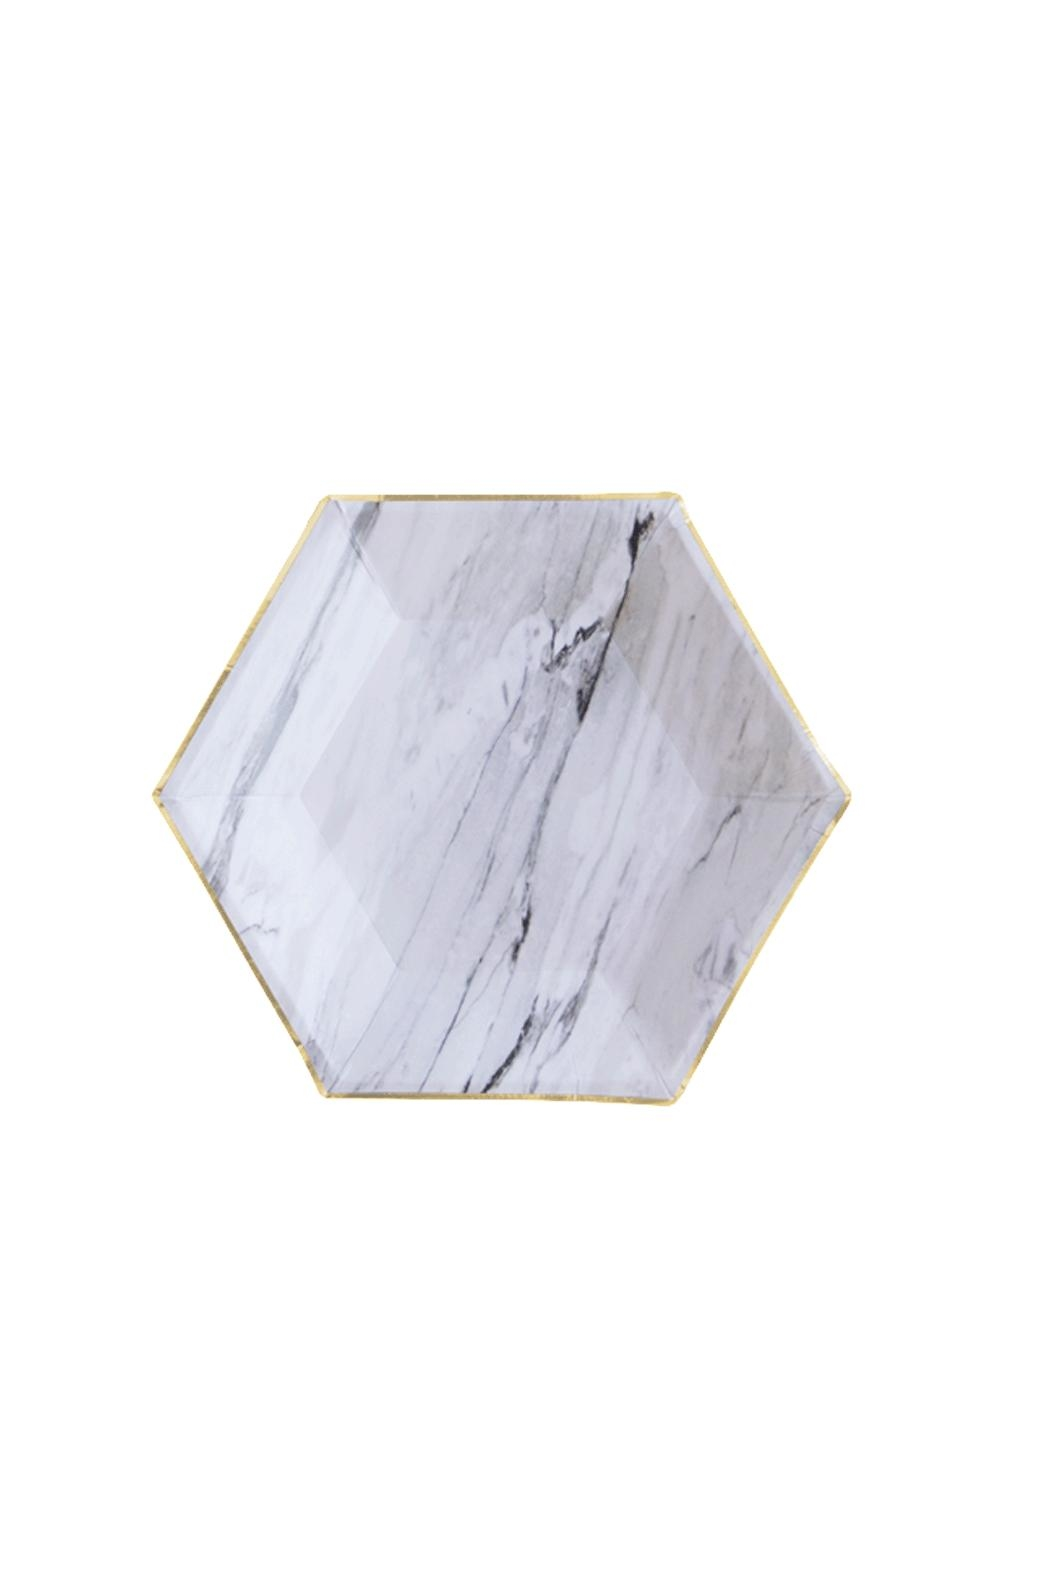 RENDR Marble Small Plates - Main Image